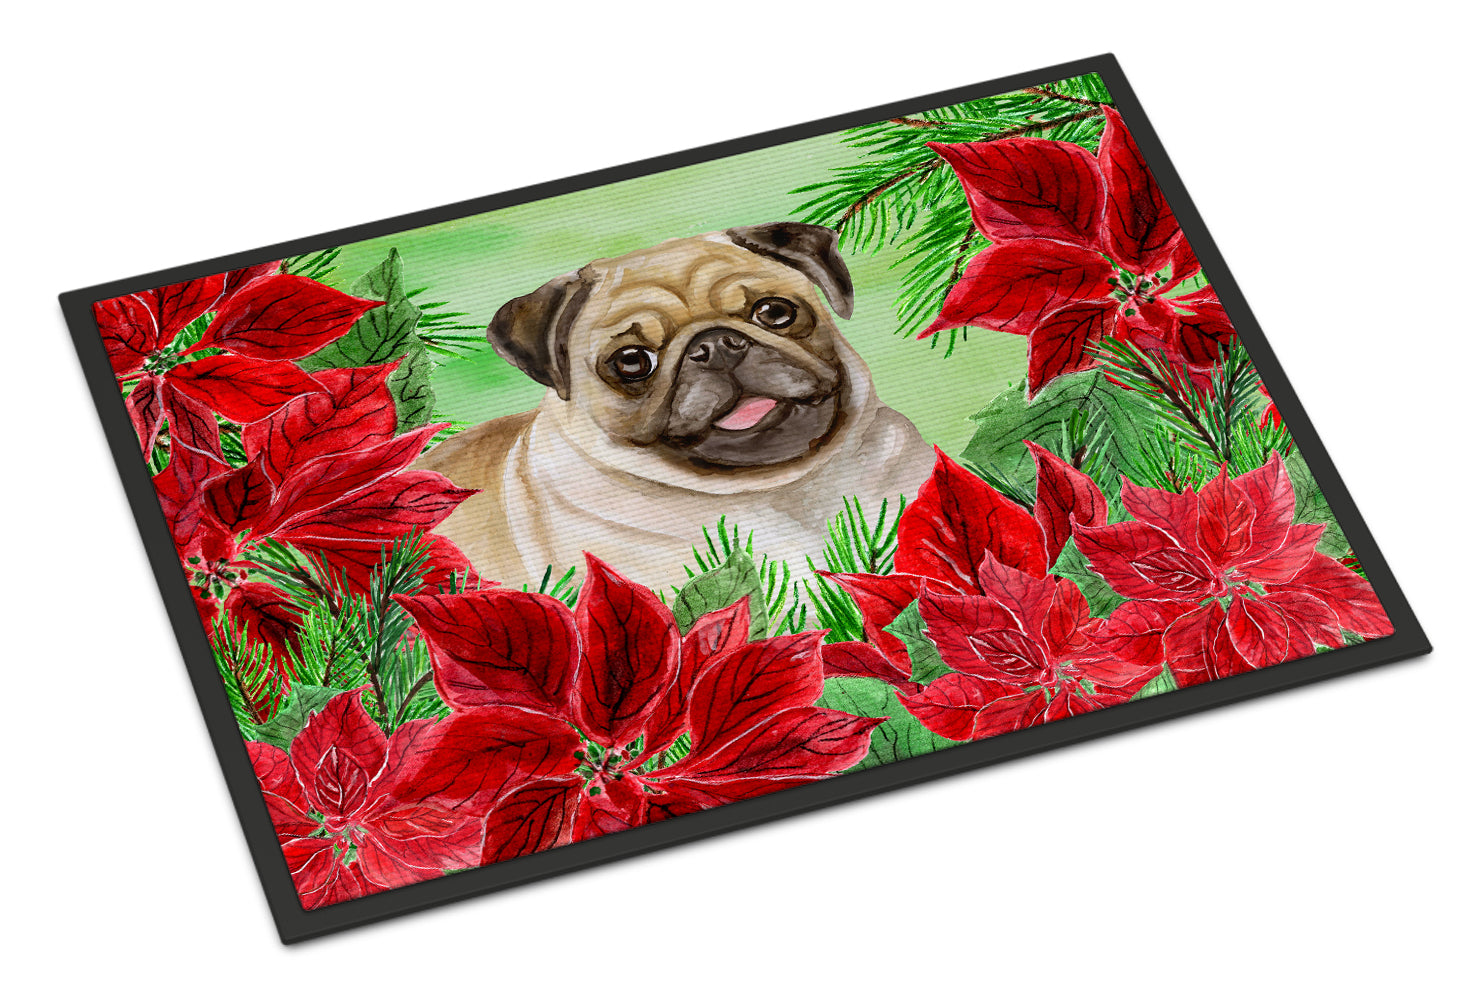 Fawn Pug Poinsettas Indoor or Outdoor Mat 18x27 CK1365MAT by Caroline's Treasures